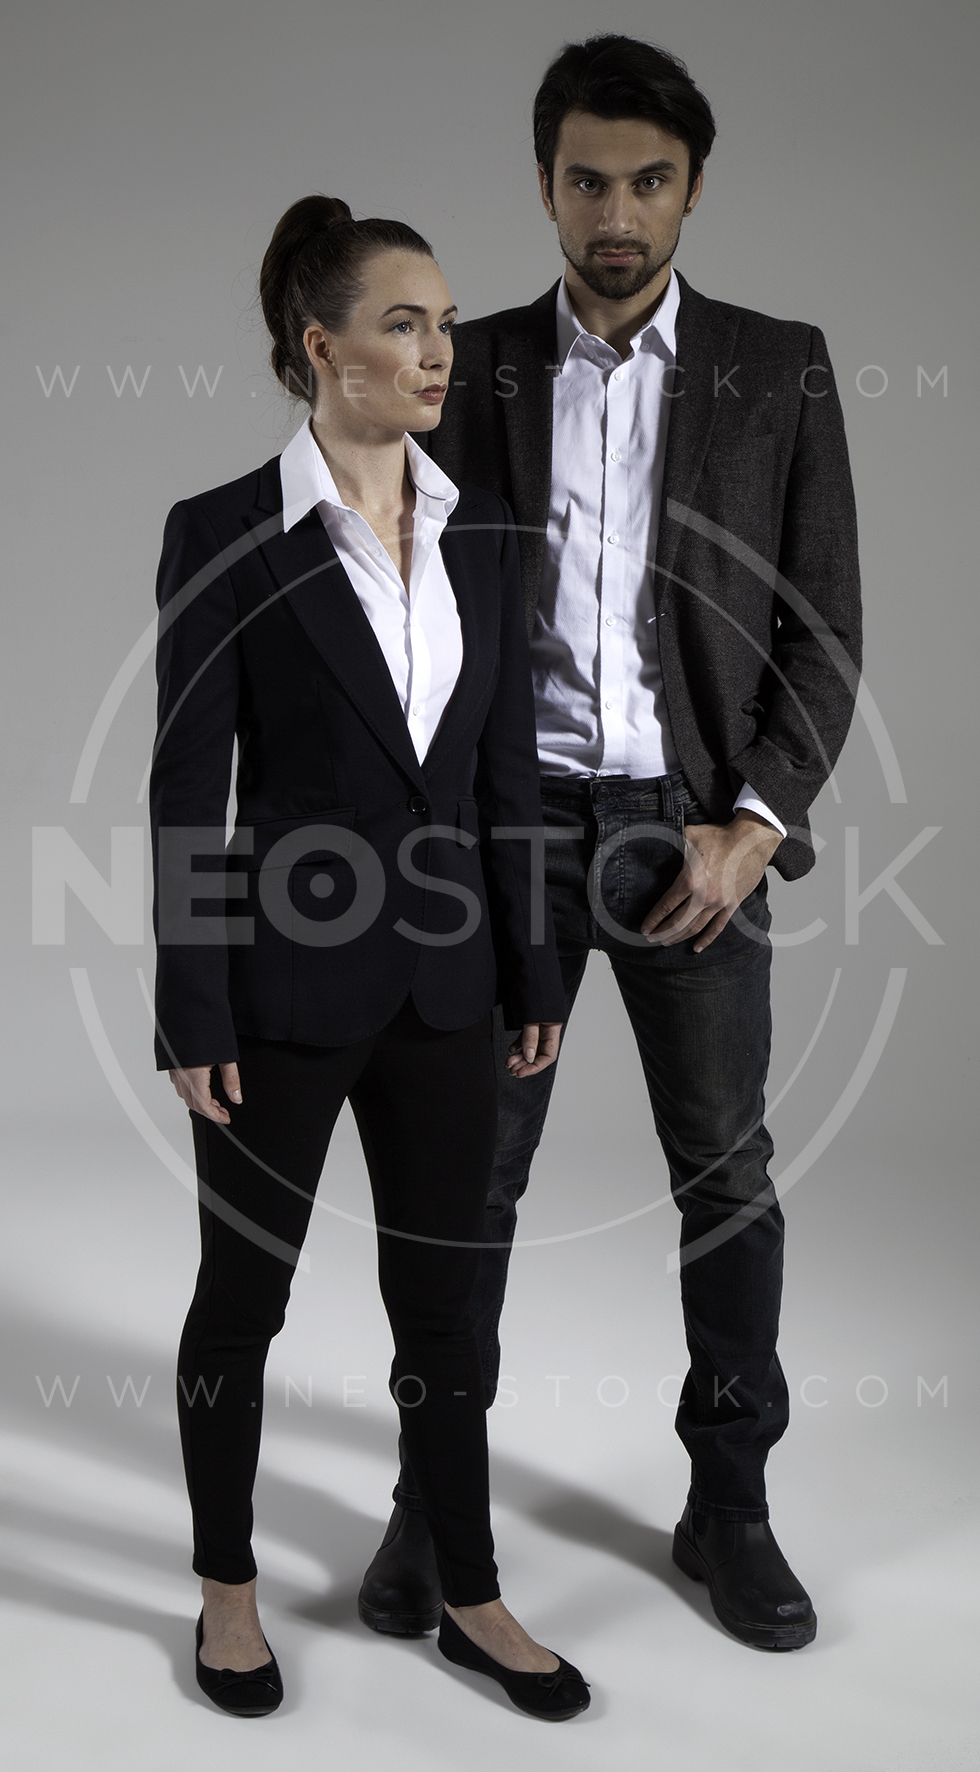 NeoStock - Cop Drama Duo - Stock Photography V